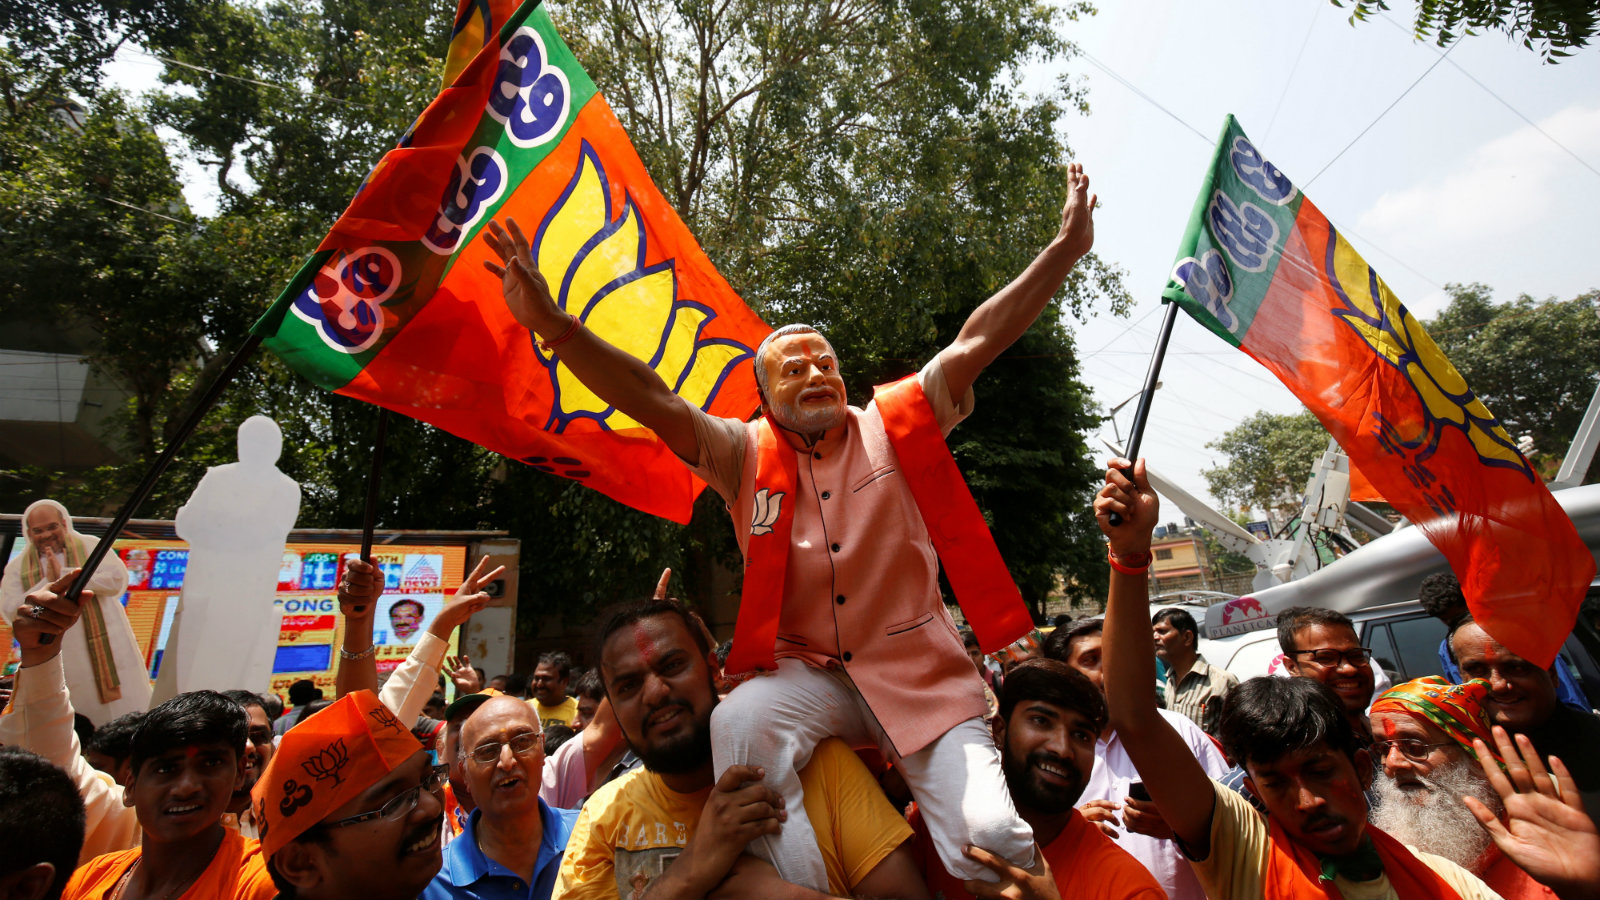 Supporters of India's ruling Bharatiya Janata Party (BJP) celebrate after learning of the initial poll results of Karnataka state assembly elections, in Bengaluru, India May 15, 2018.